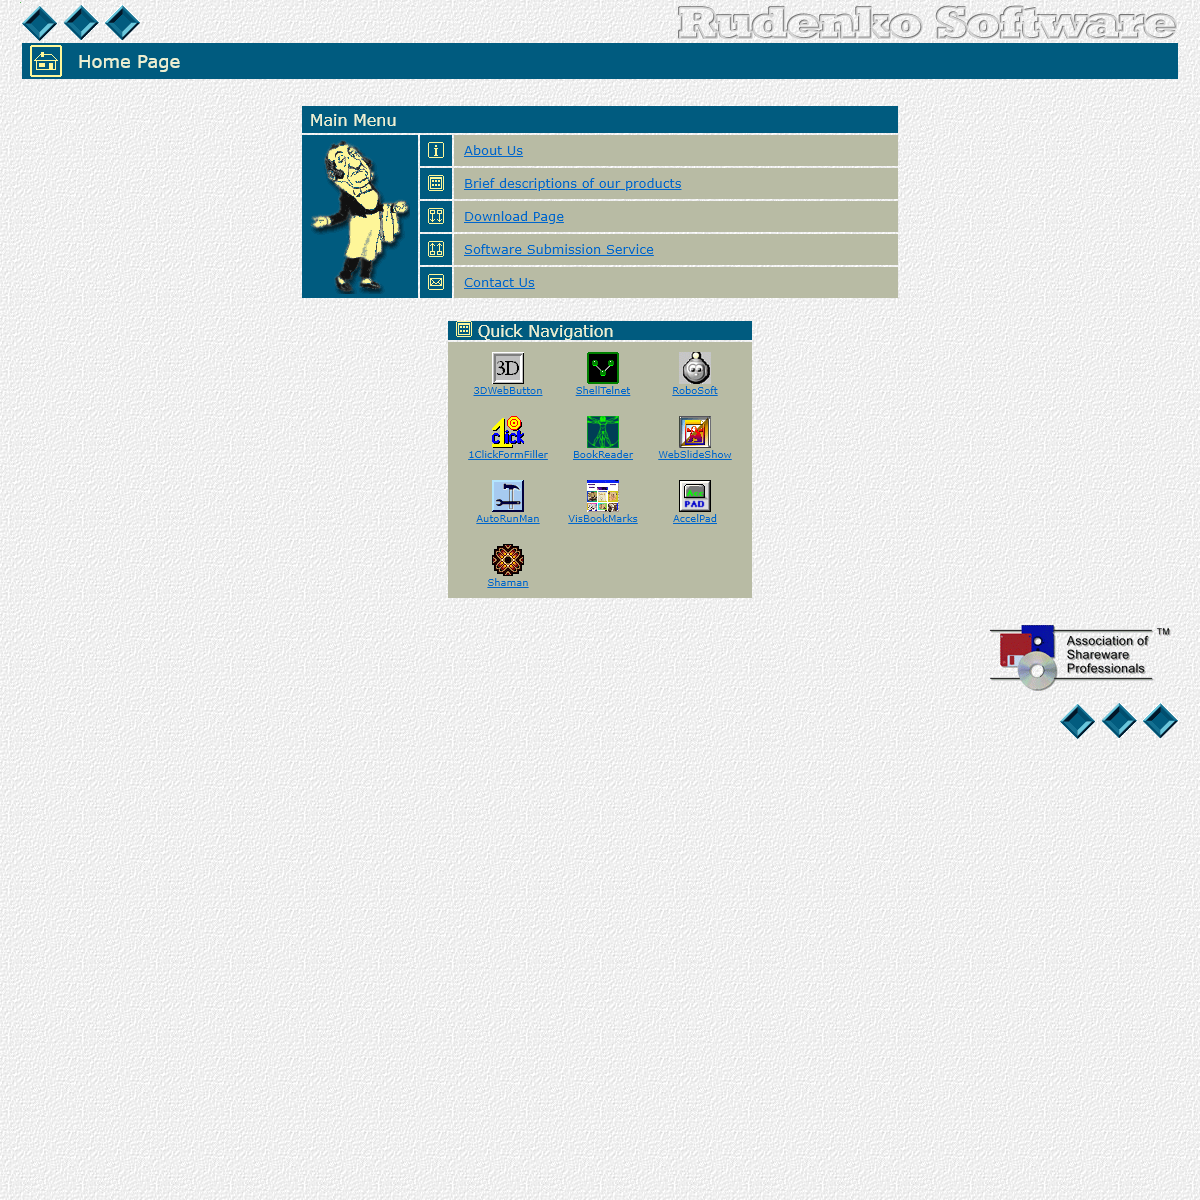 Rudenko Software Home Page